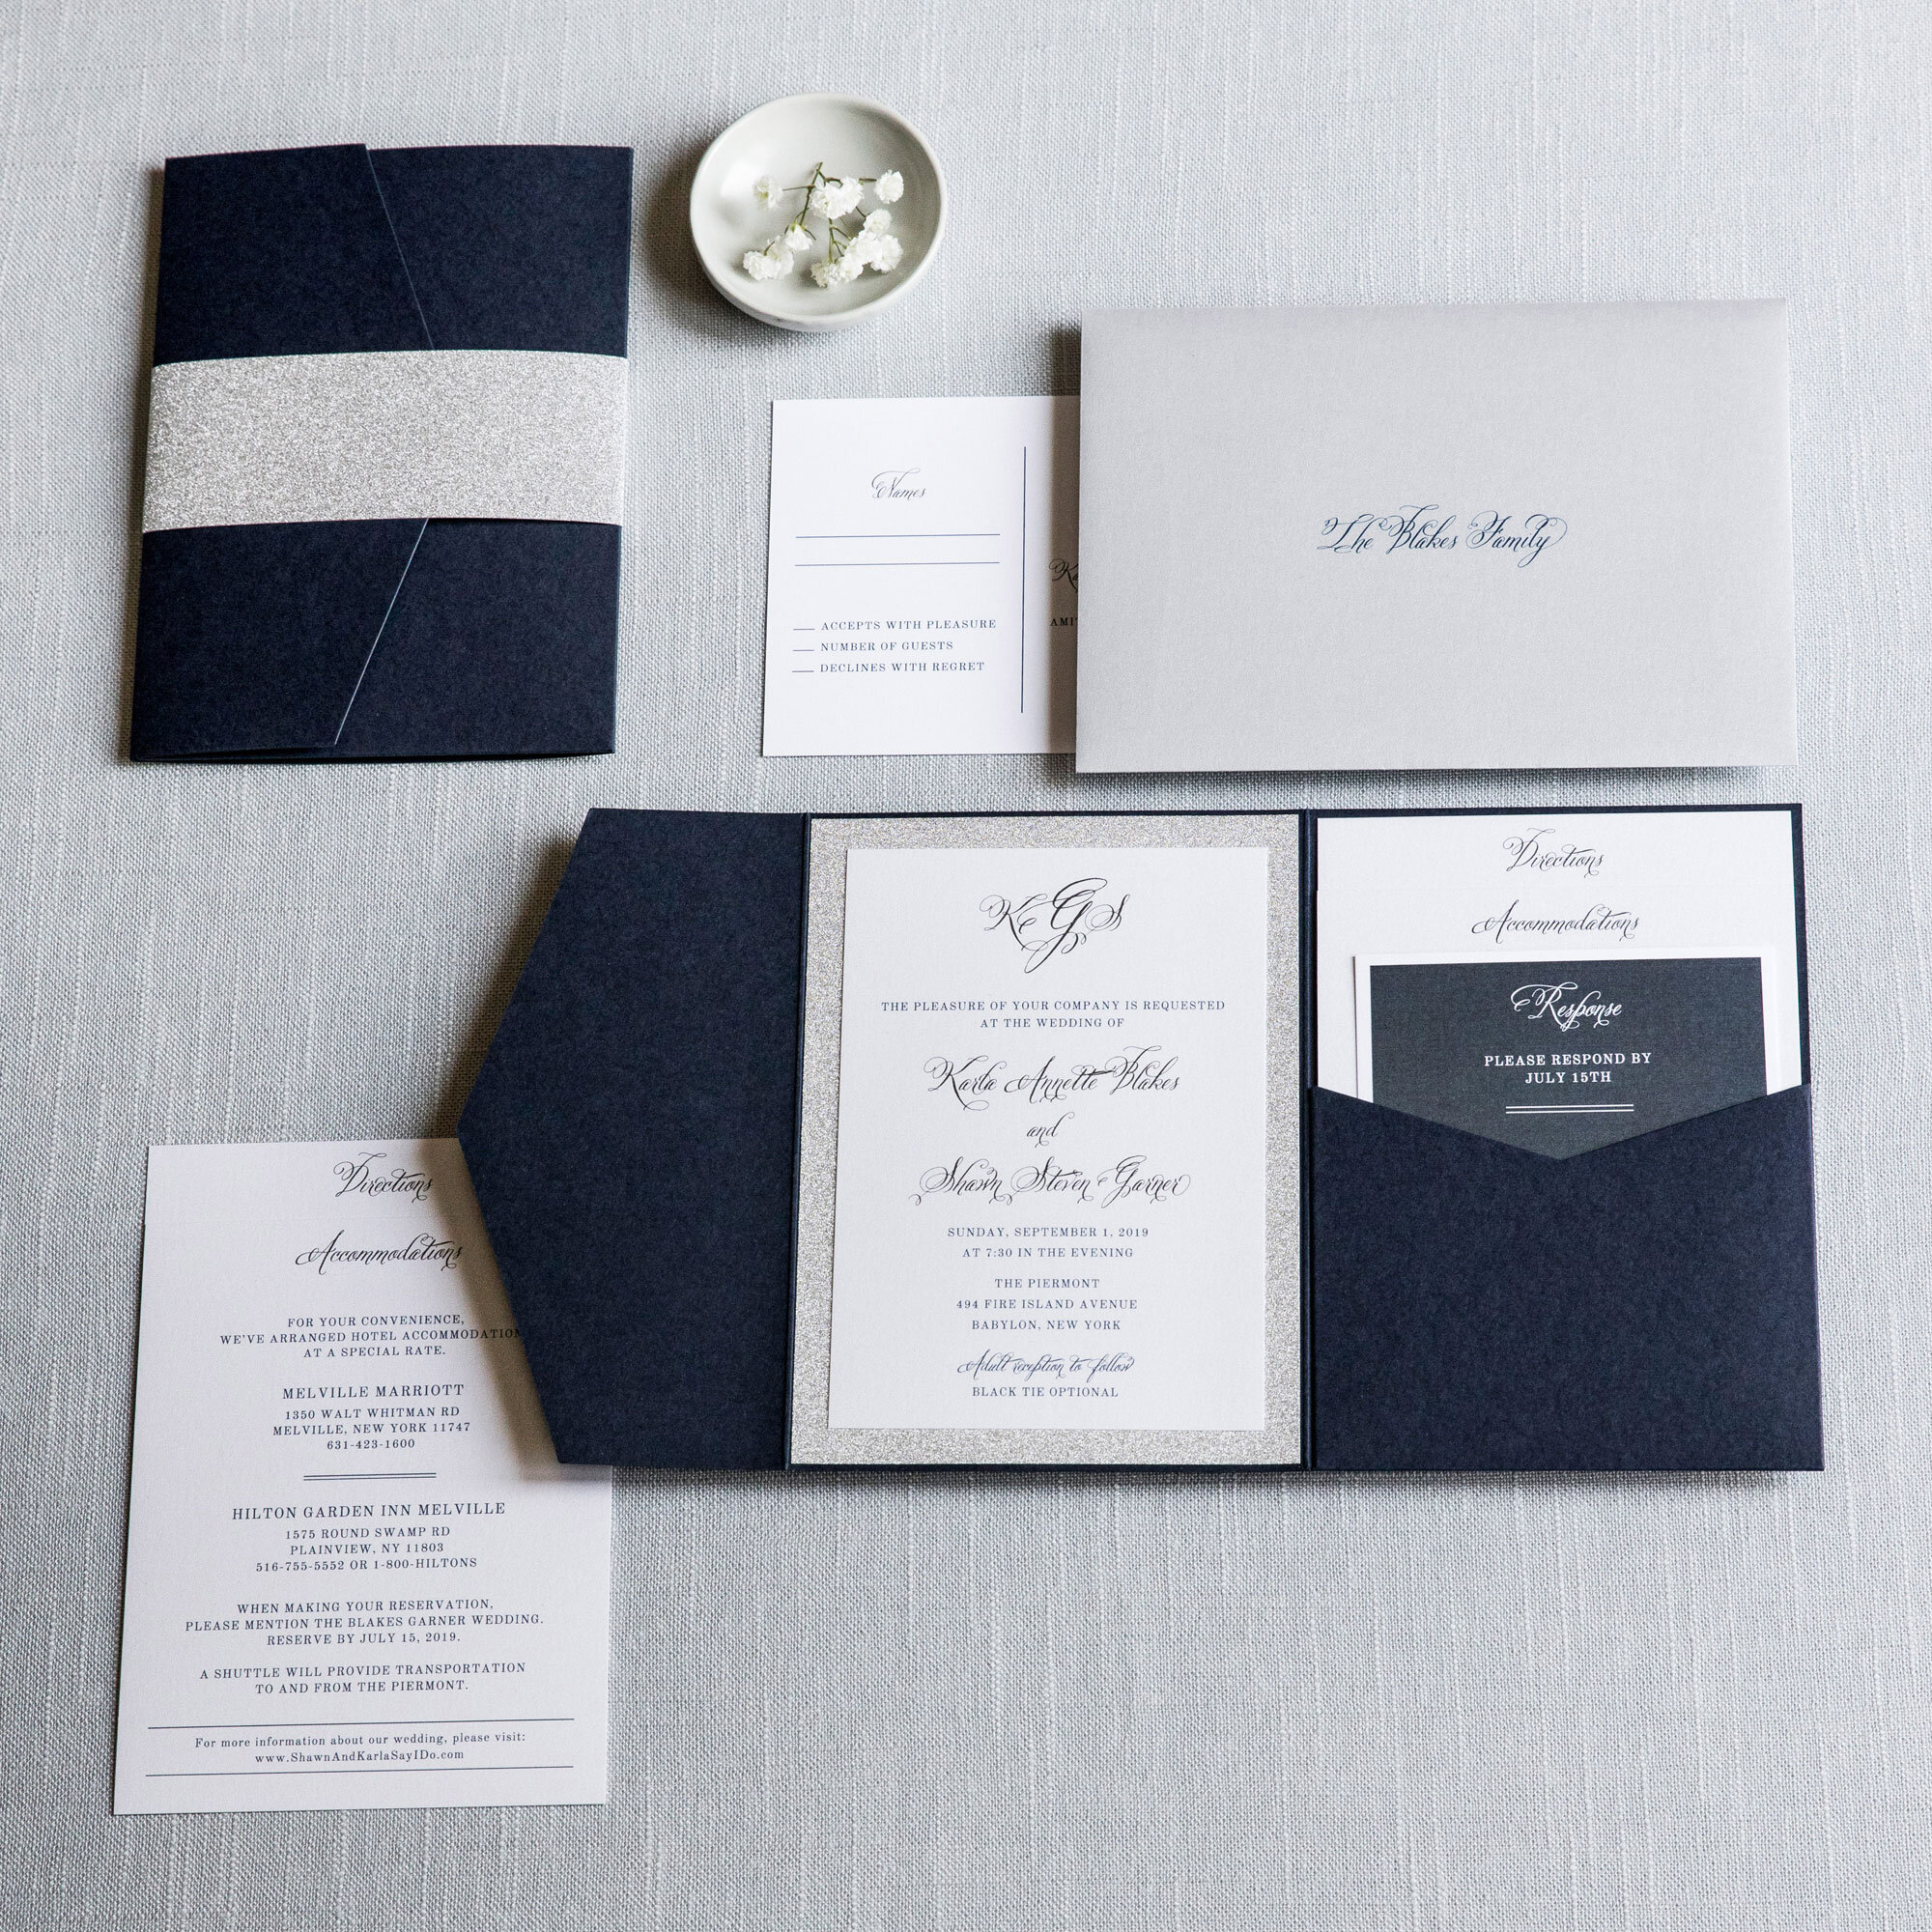 robedeedesign-garnerweddinginvitation-jeanboucherphotography.jpg